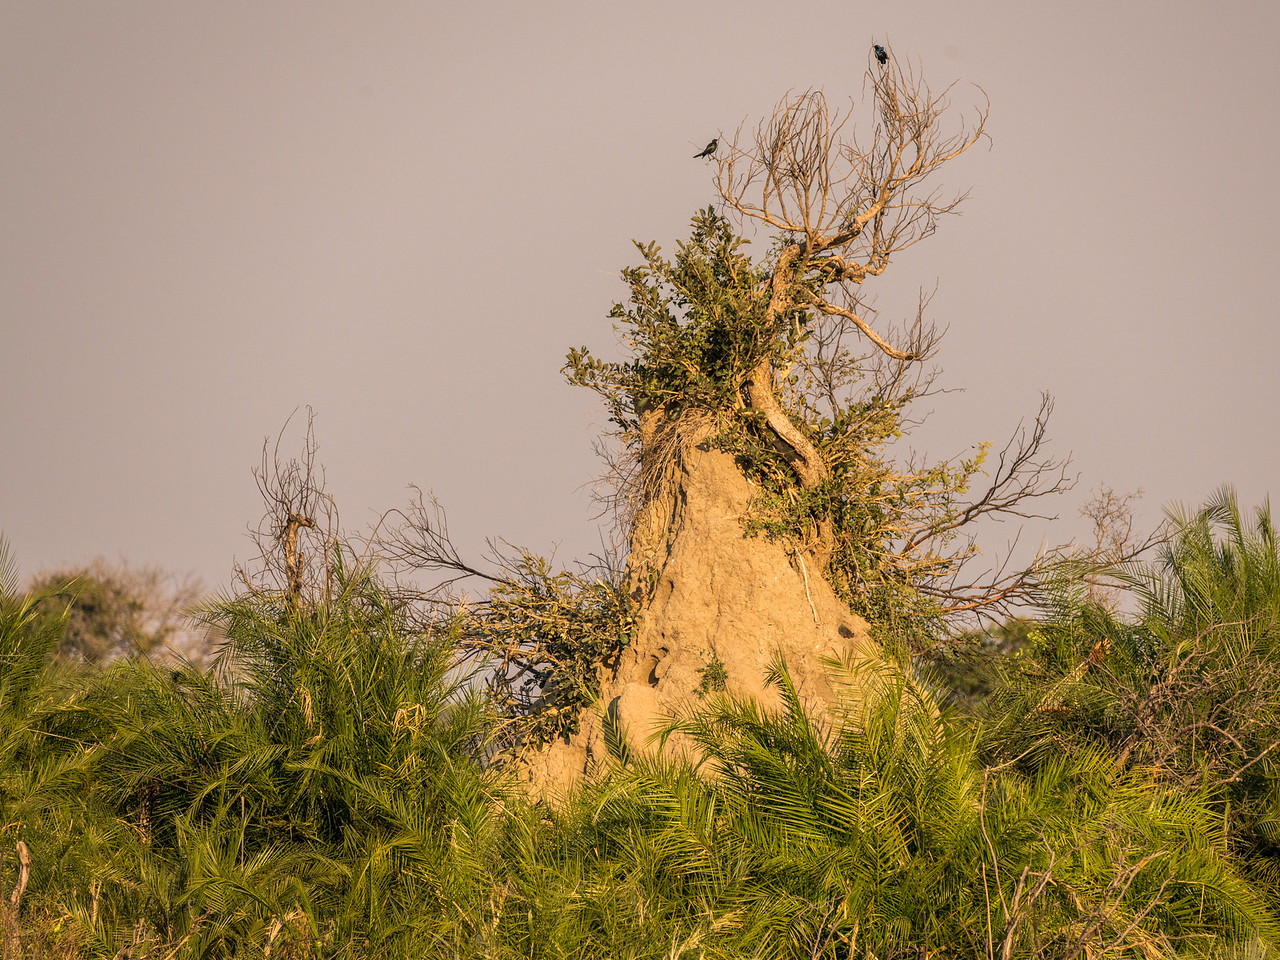 Abandoned Termite Mound